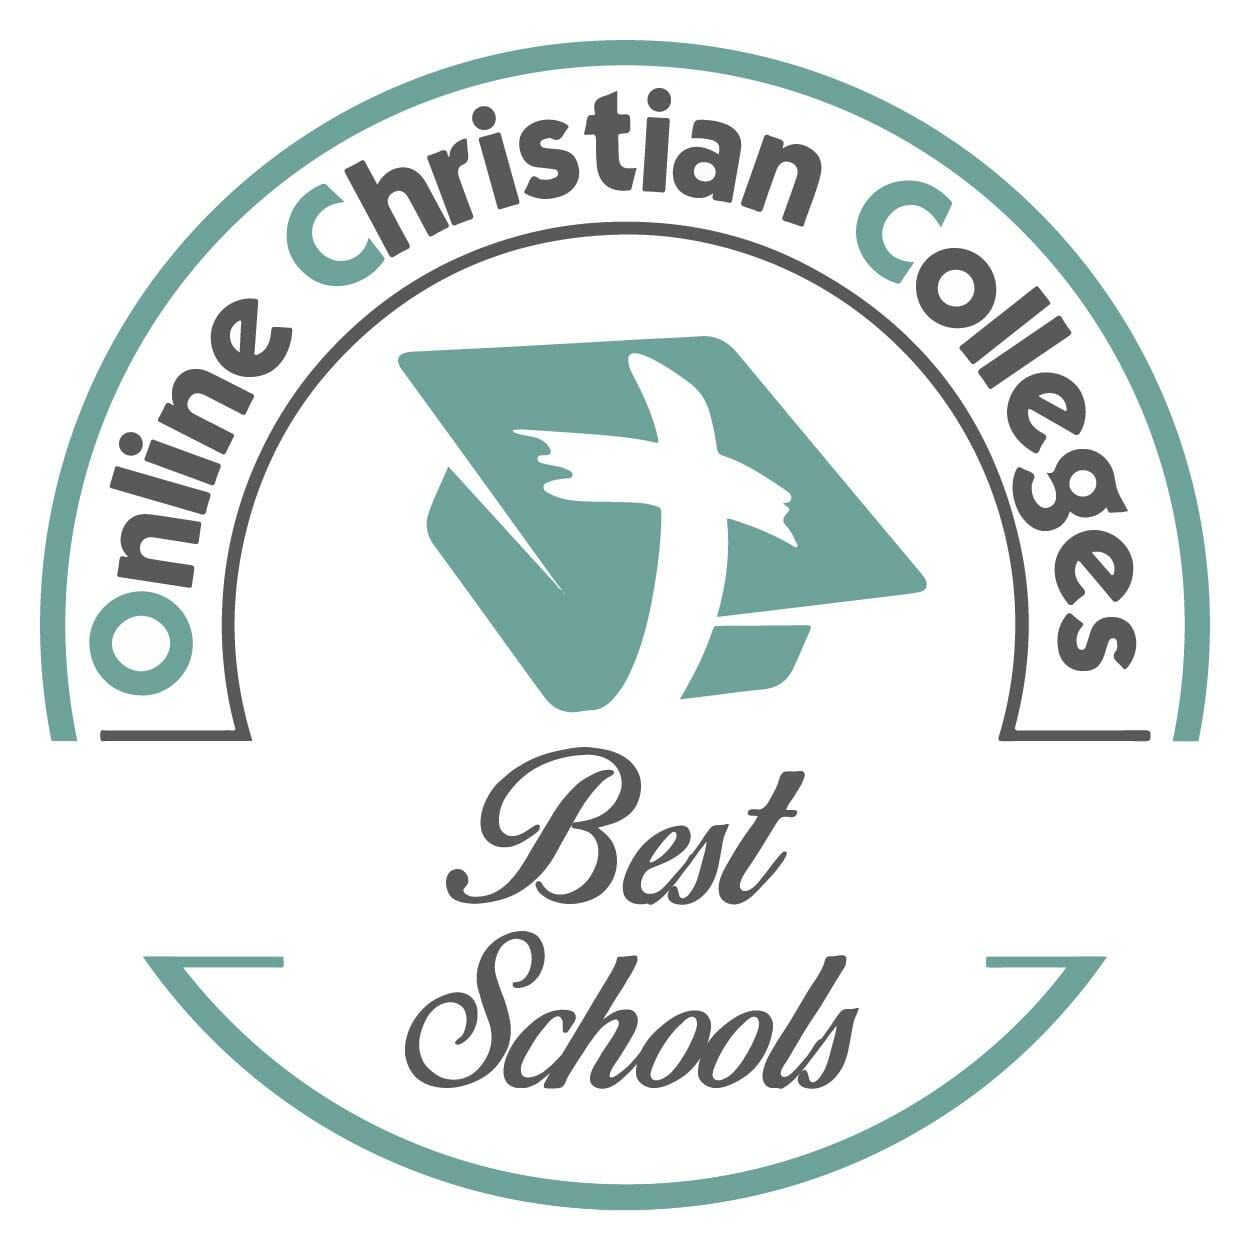 Online Program Rankings